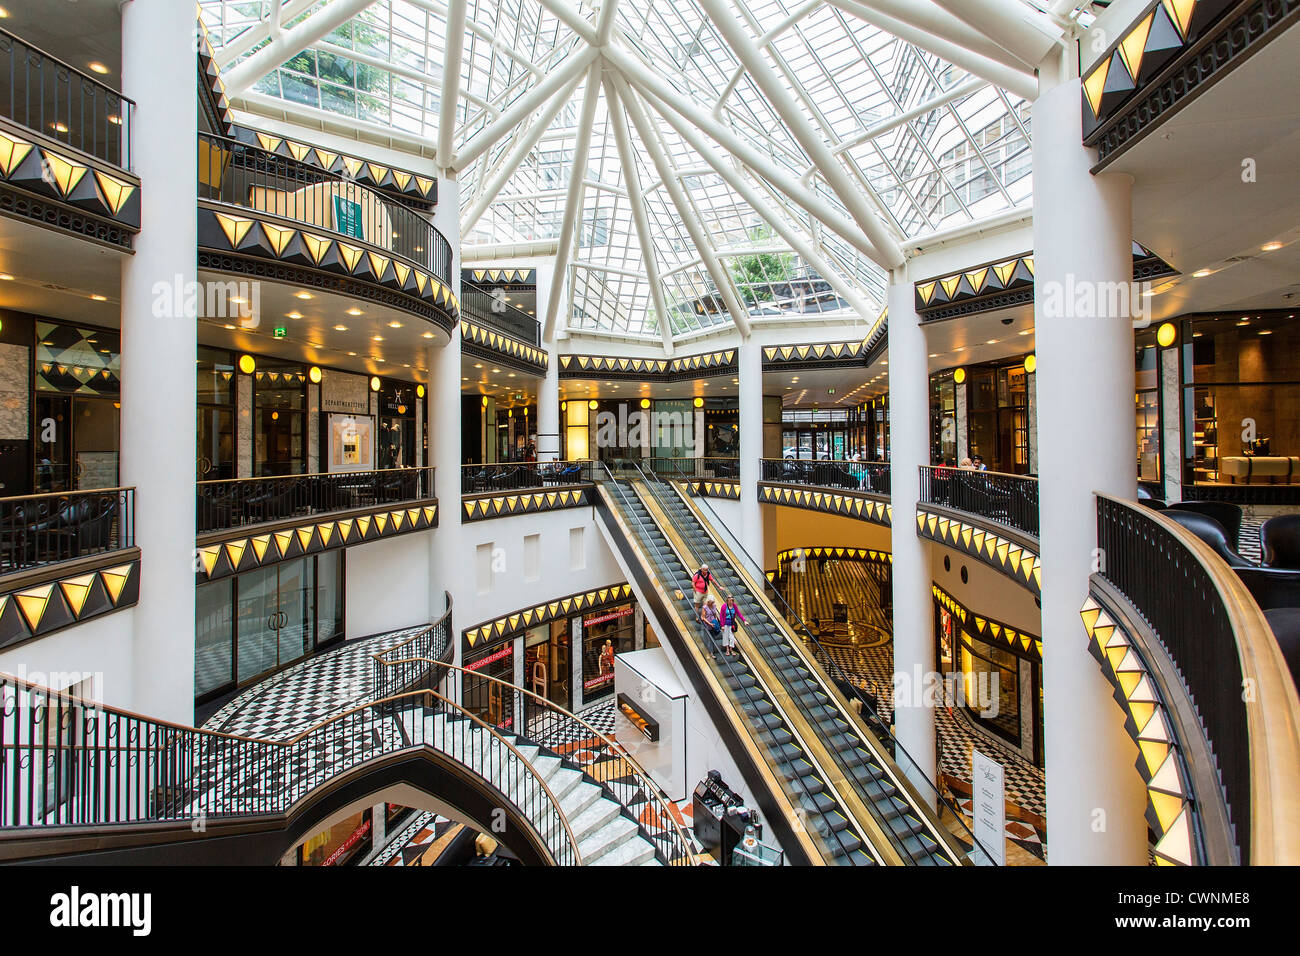 Europe, Germany, Berlin, Friedrichstrasse, the shopping Center Quartier 206 - Stock Image